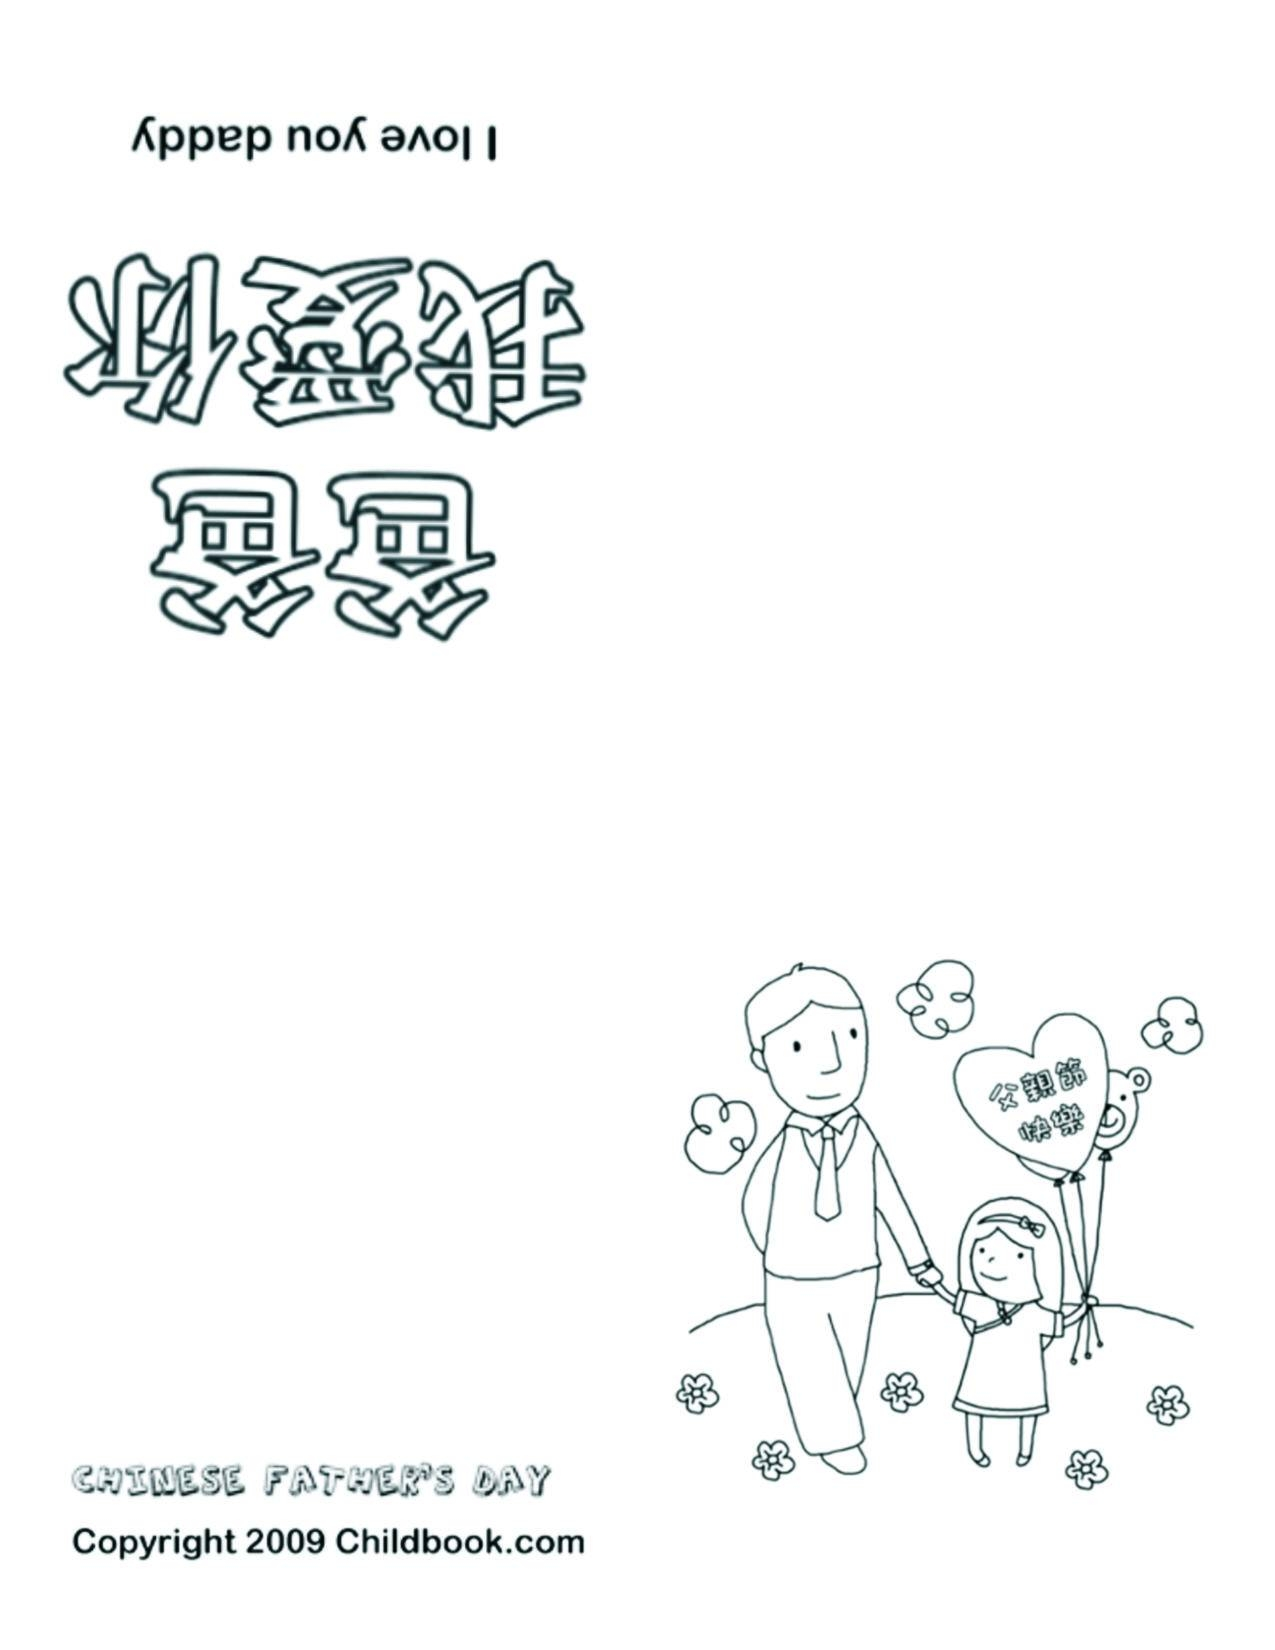 Chinese Fathers Day Coloring Pages For Kids Intended For Best And Newest Wo Ai Ni In Chinese Wall Art (View 16 of 25)